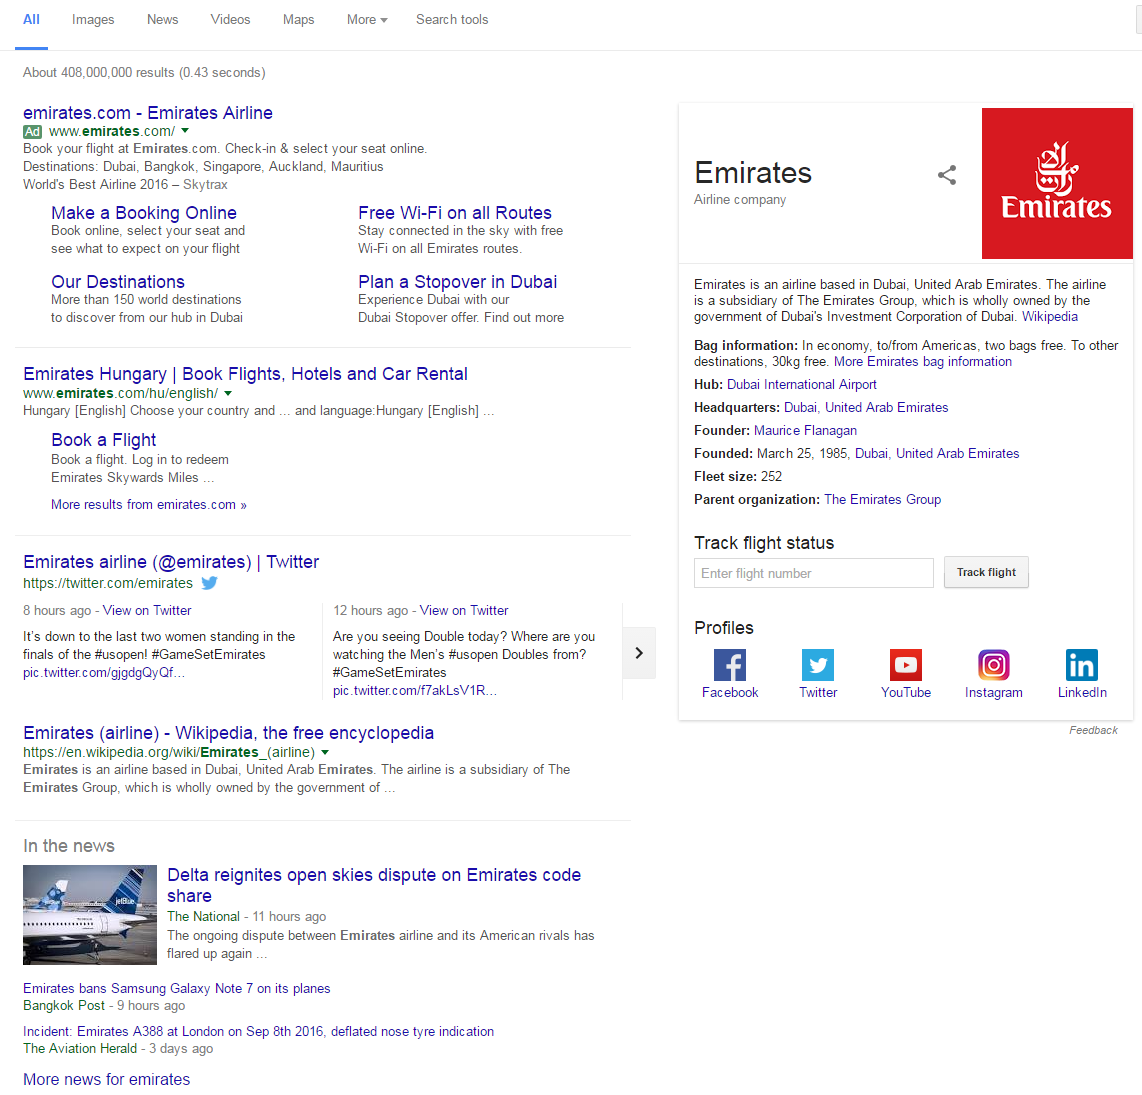 Why we advertise on brand search queries and you should too